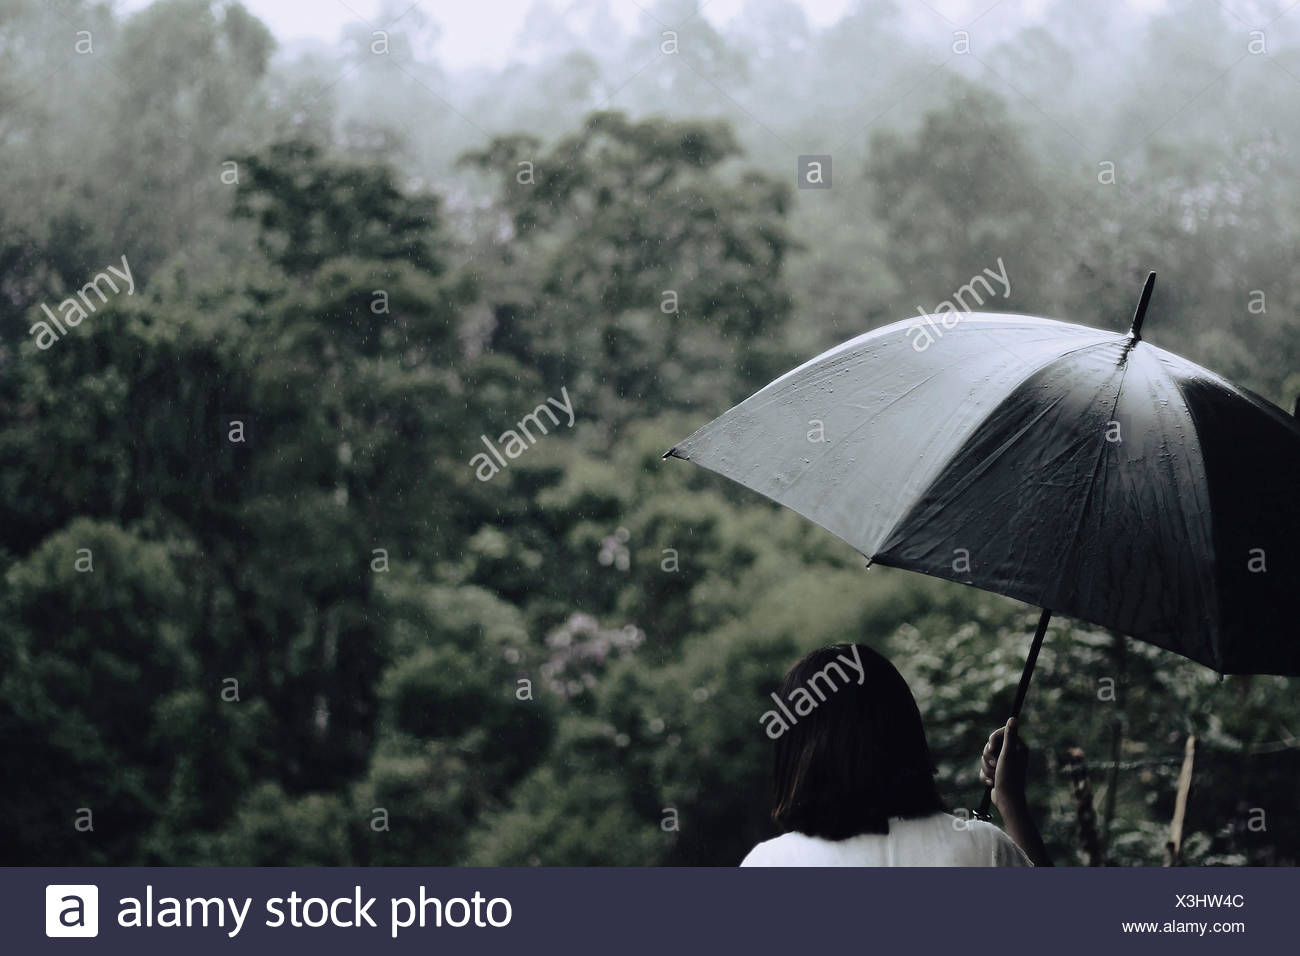 Rear View Of Woman With Umbrella With Trees In Background Stock Photo